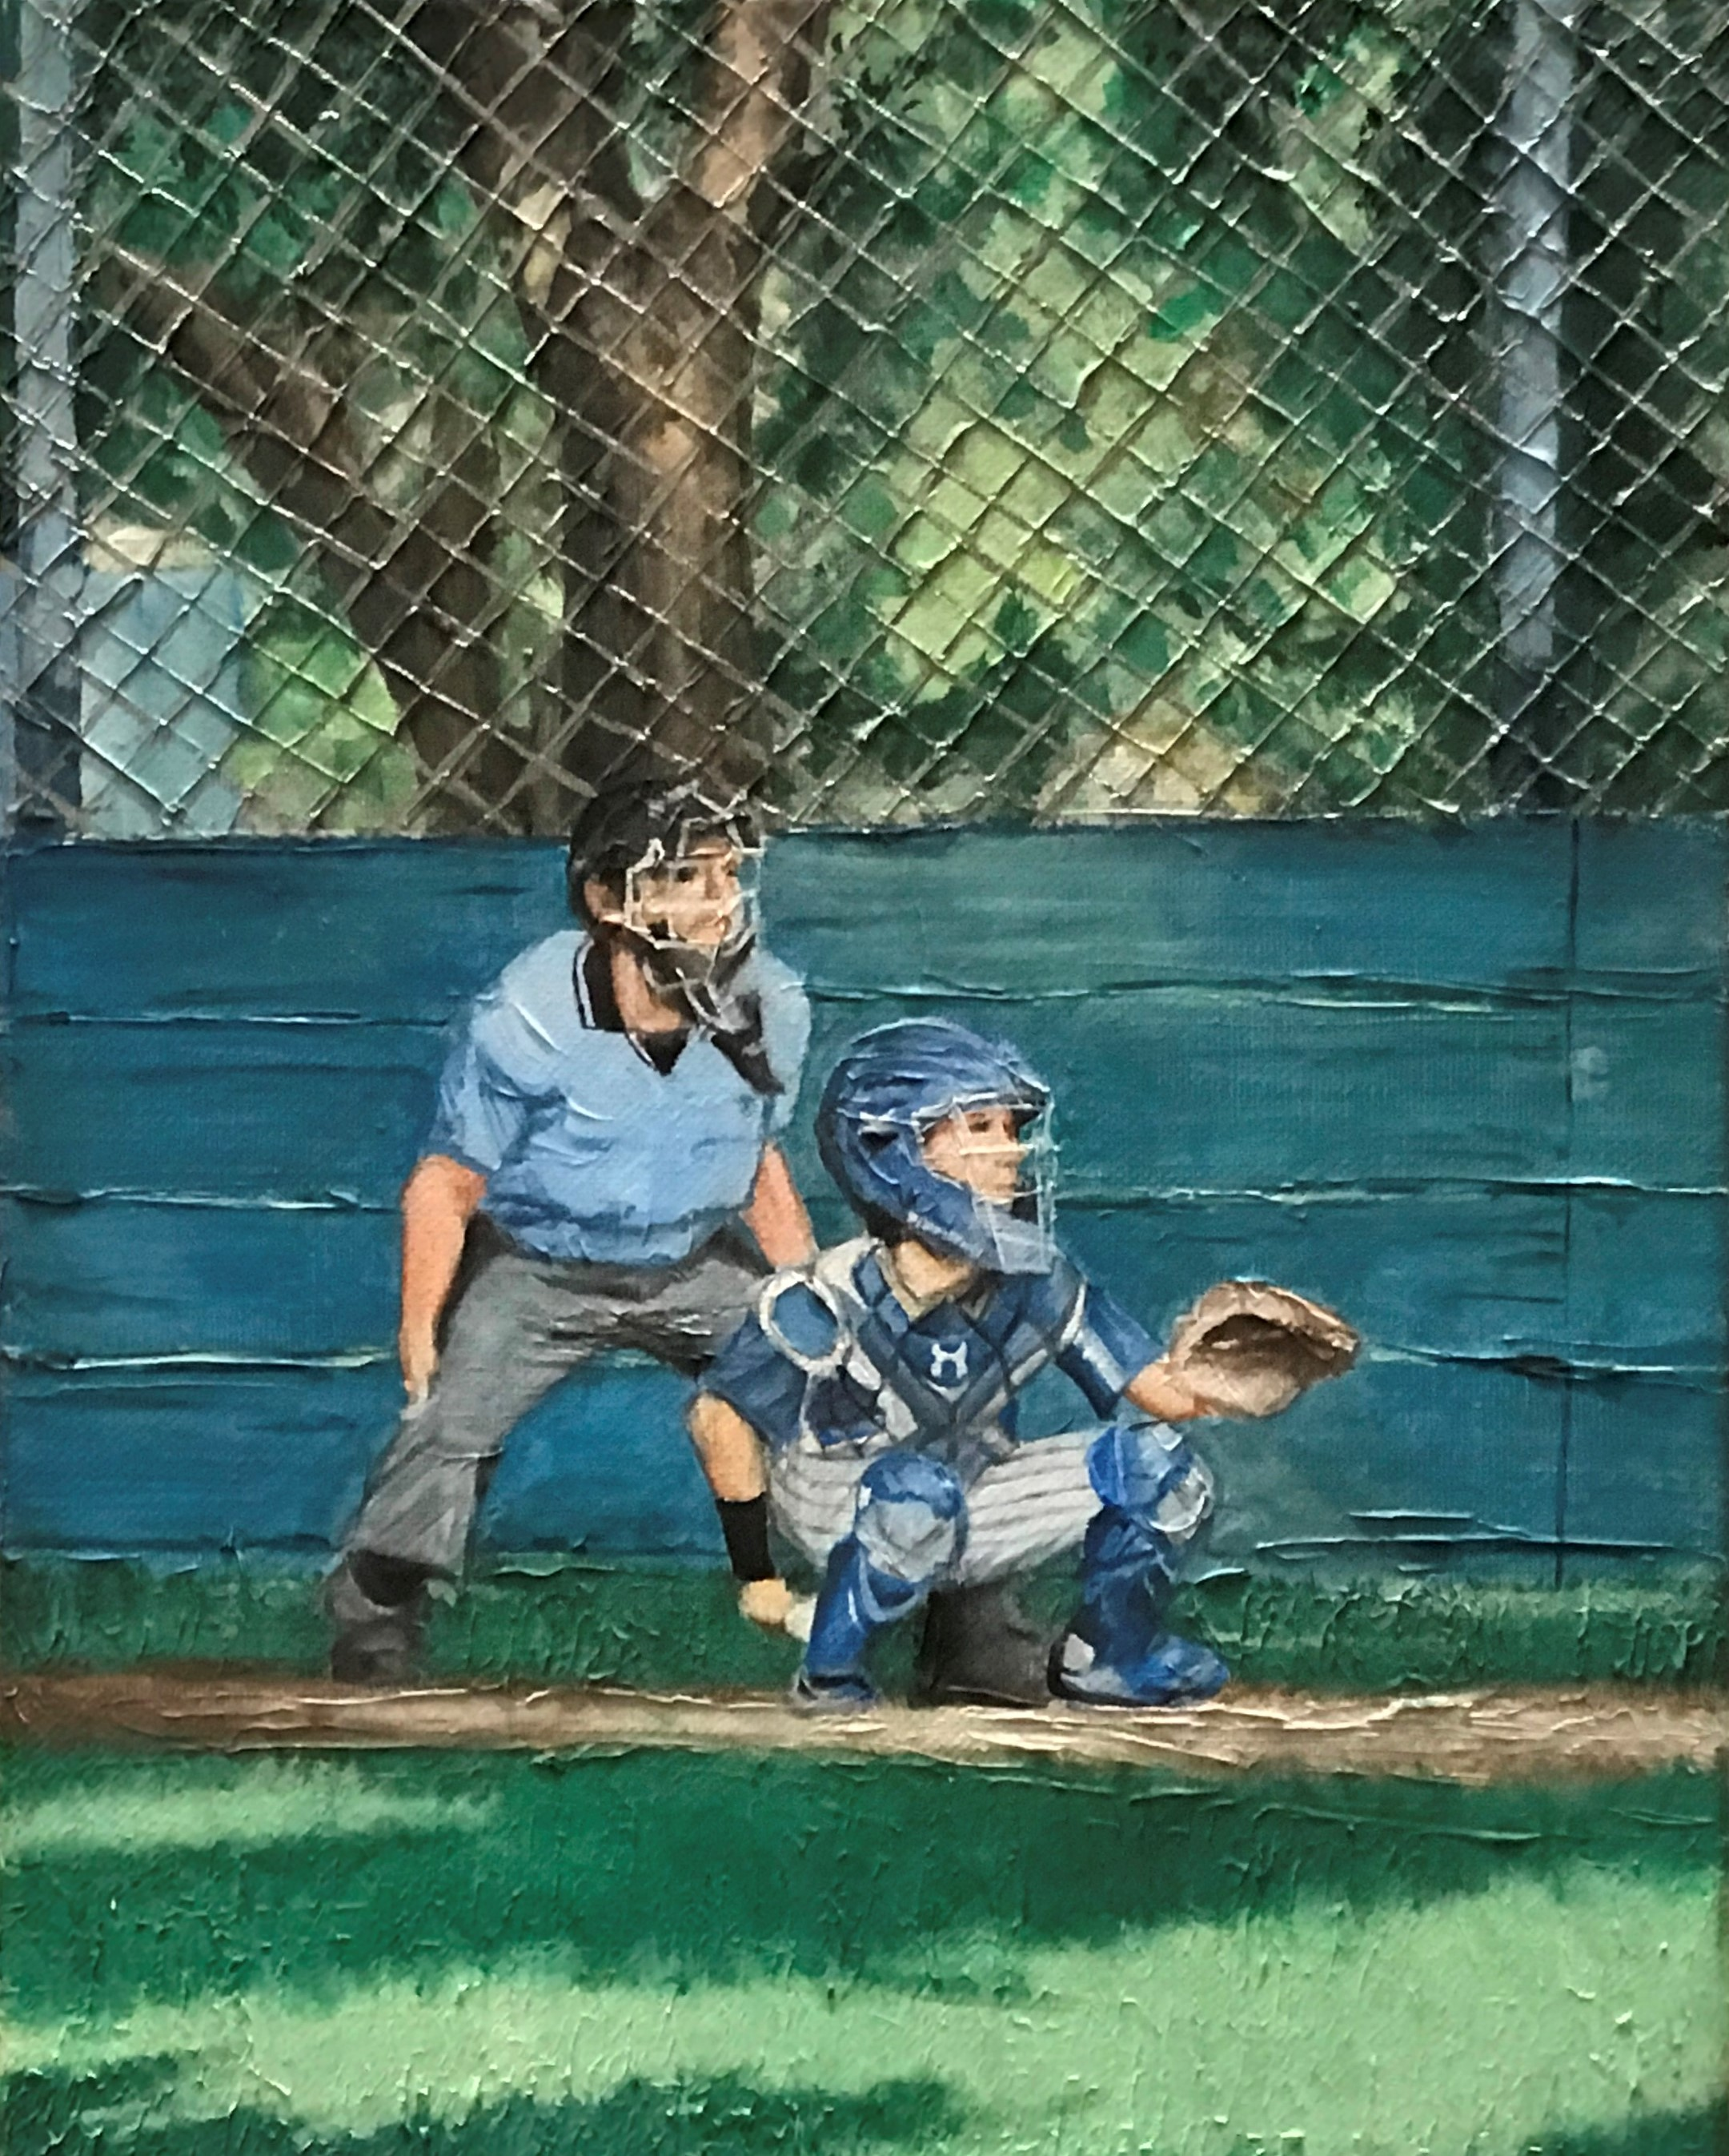 Student painting of umpire and catcher on ball field